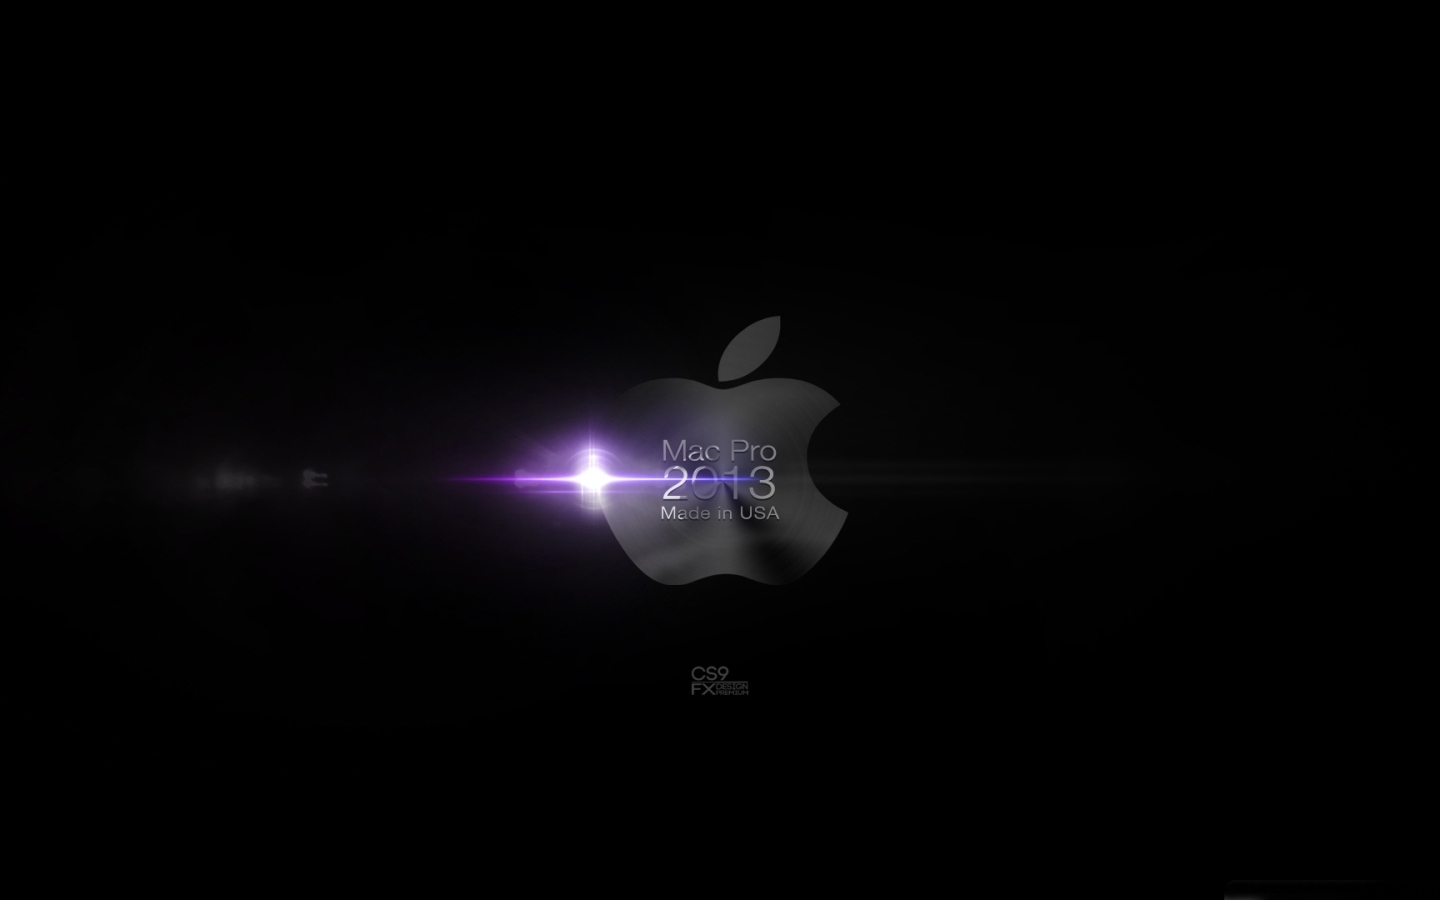 Mac pro 2013 design Mac Wallpaper Download Mac 1440x900